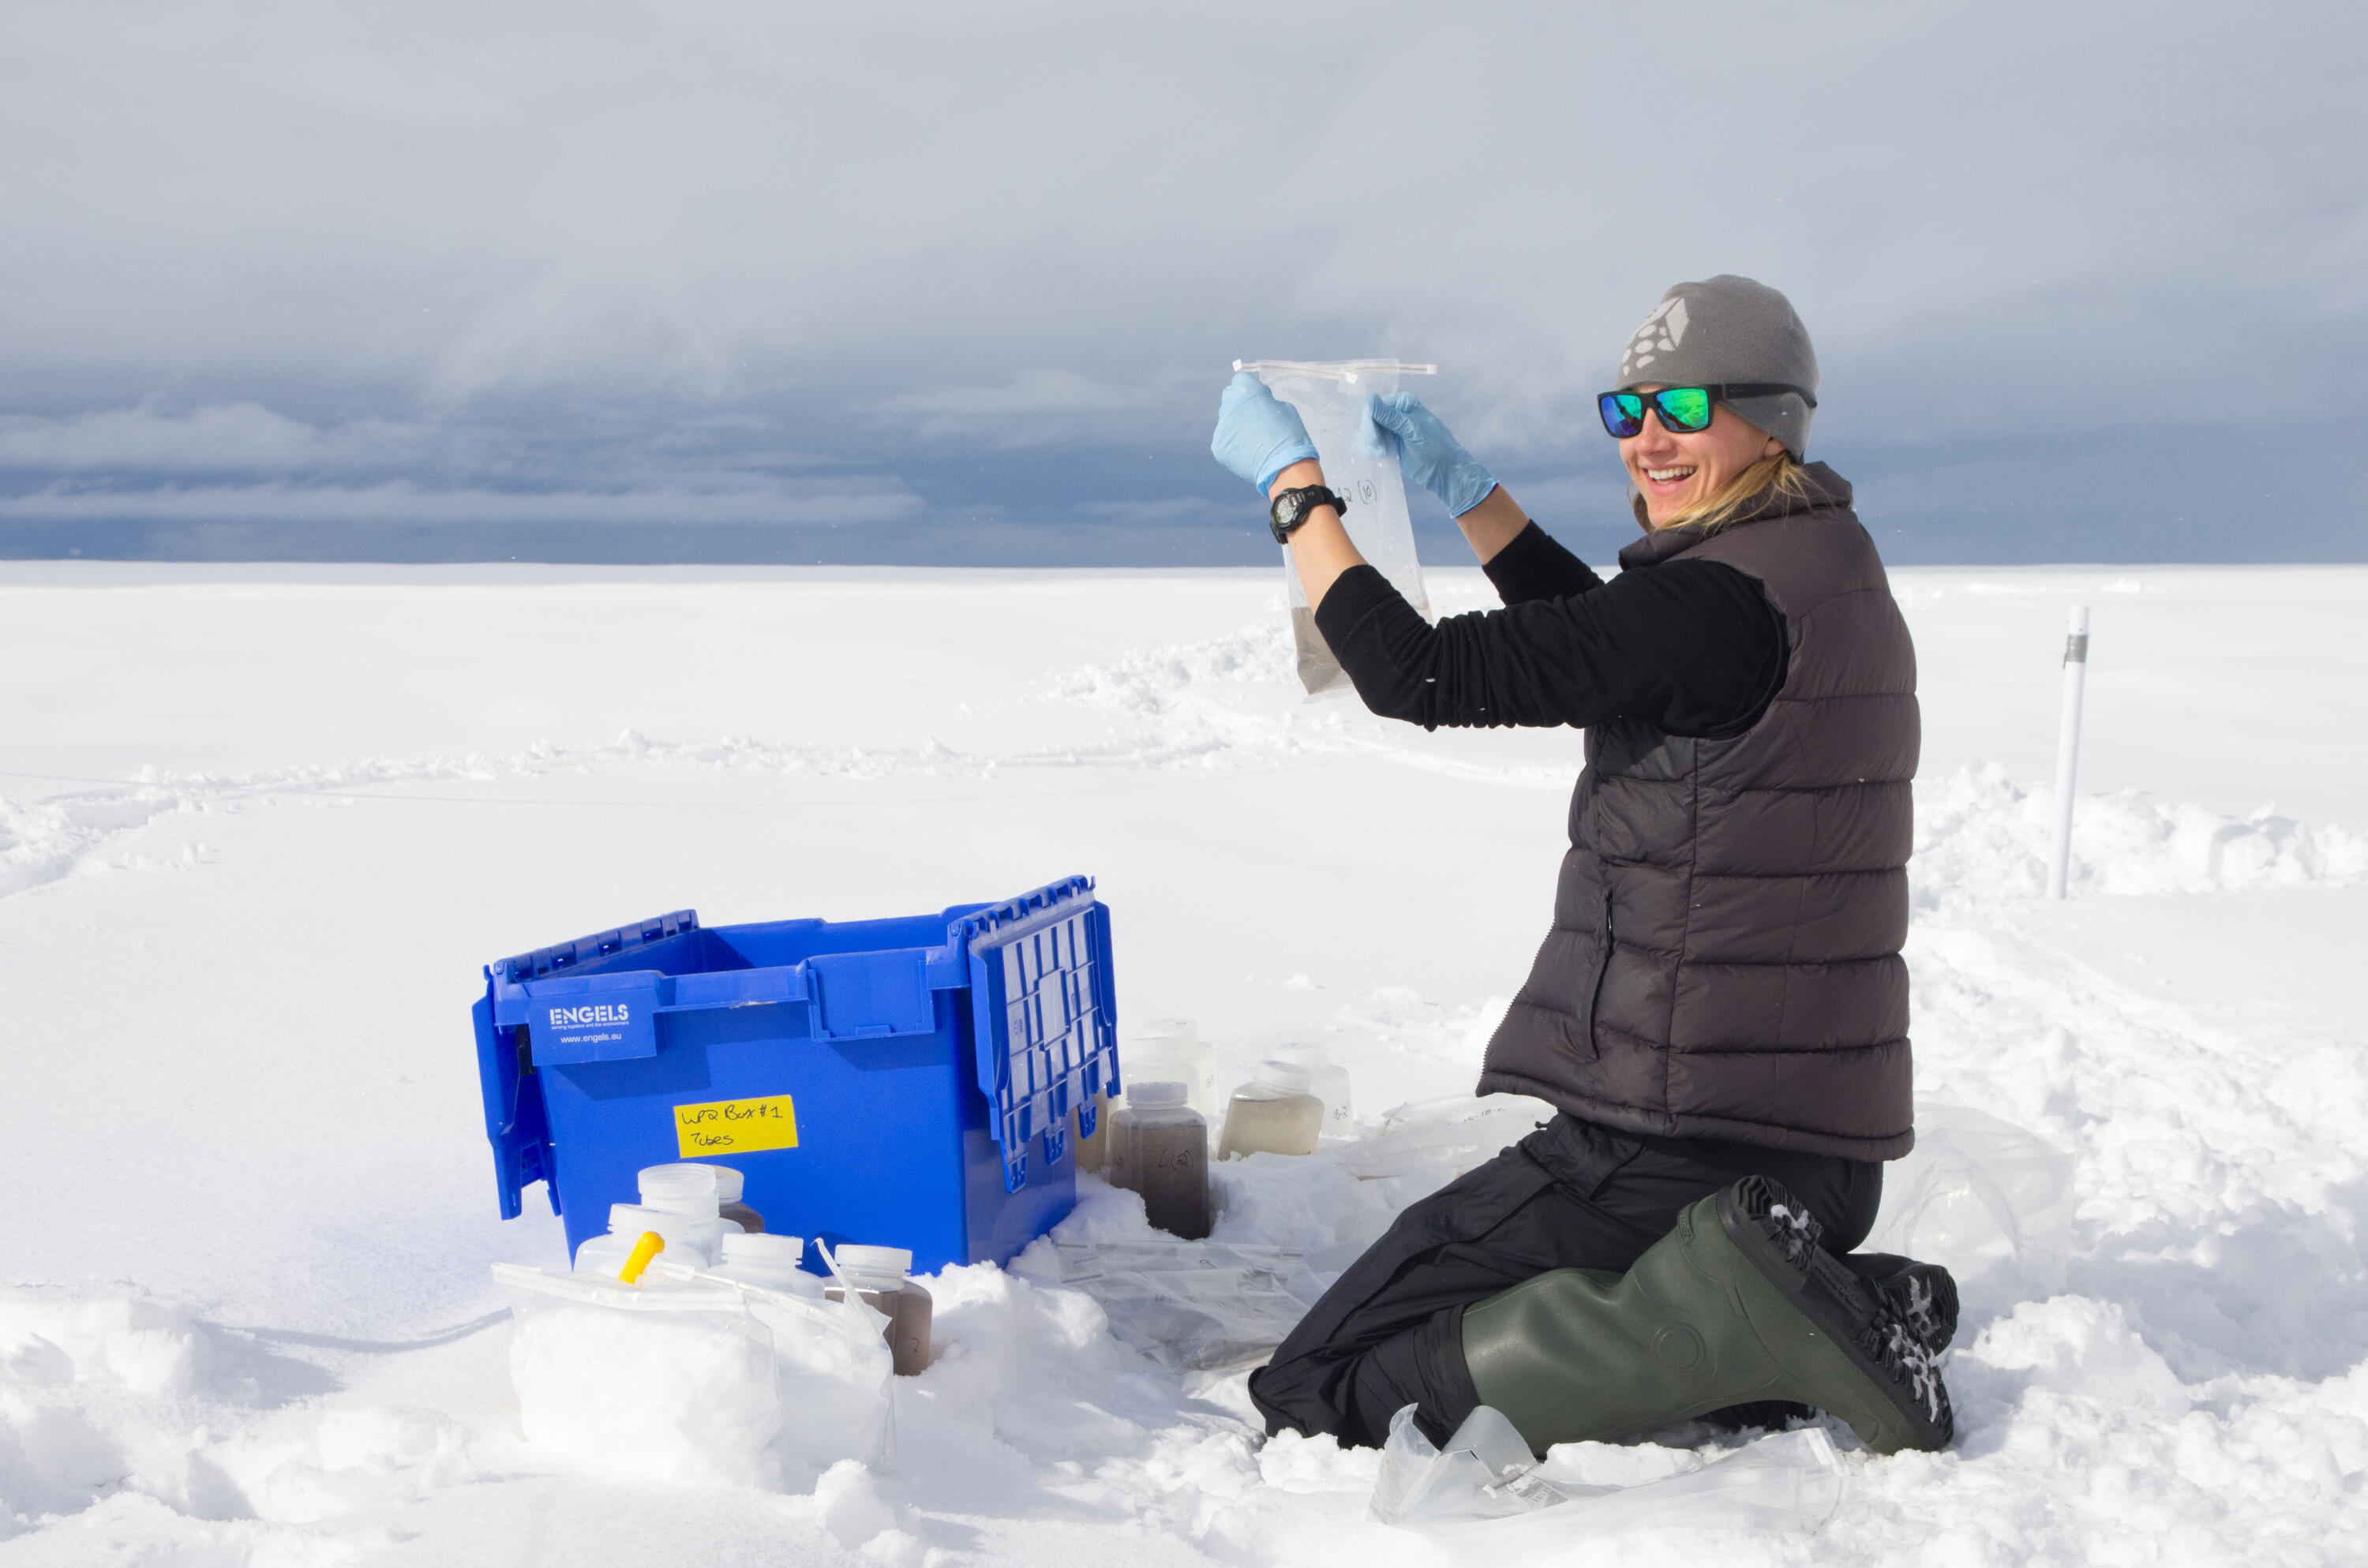 Jenine McCutcheon sampling snow on the Greenland Ice Sheet